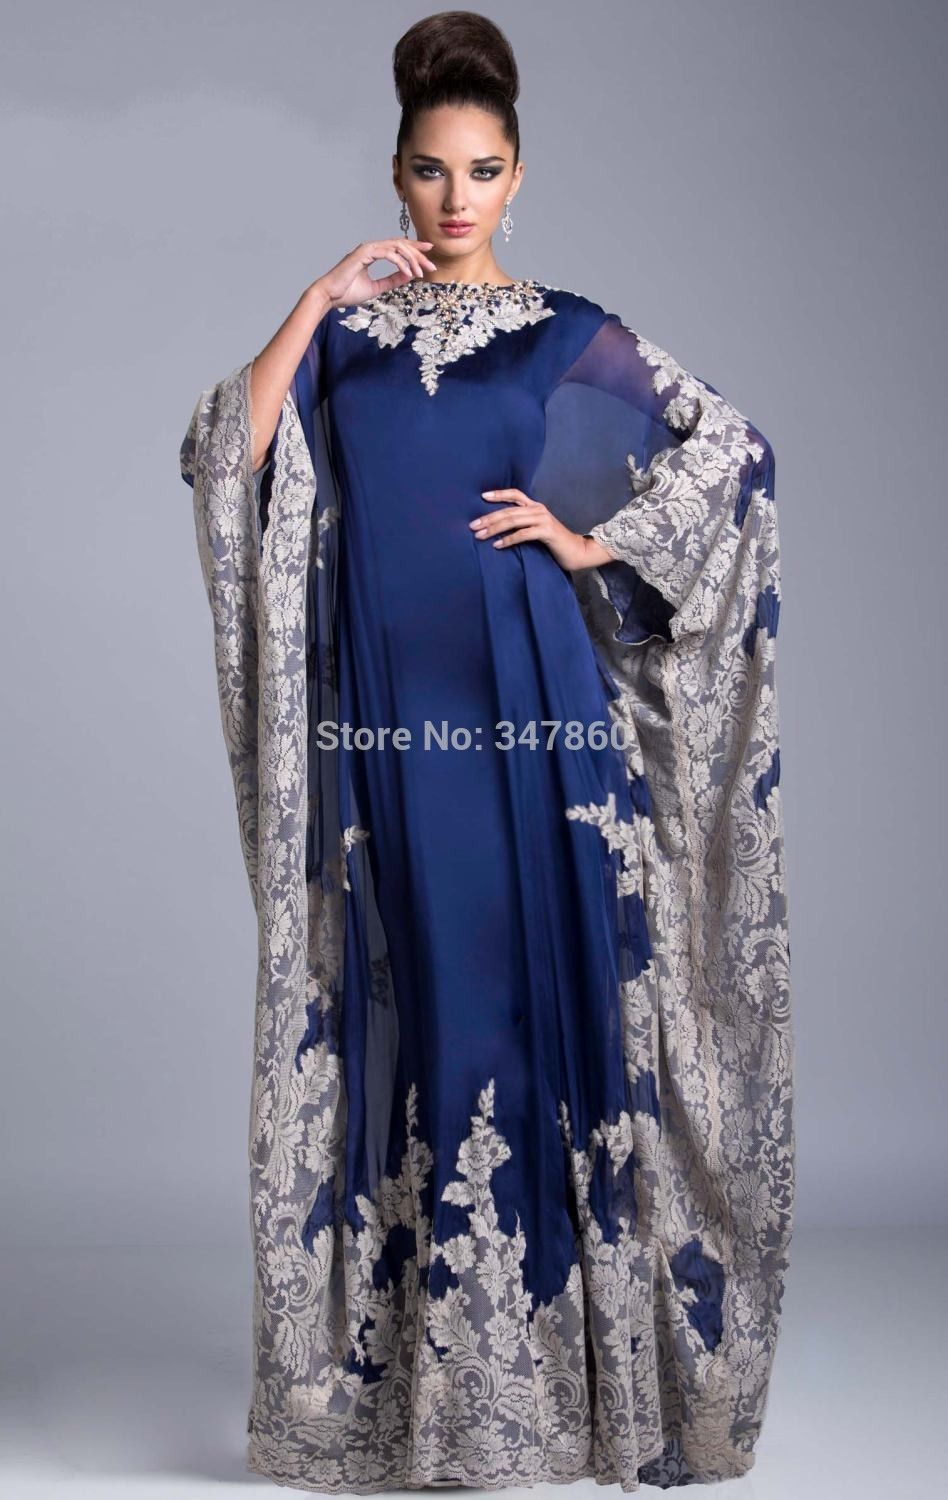 Evening Dresses Caftan Marocaine 2019 Luxury Beaded Dubai Kaftan Dress Three Quarter Sleeve Evening Dresses Saudi Arabian Prom Gown Formal Dress Crazy Price